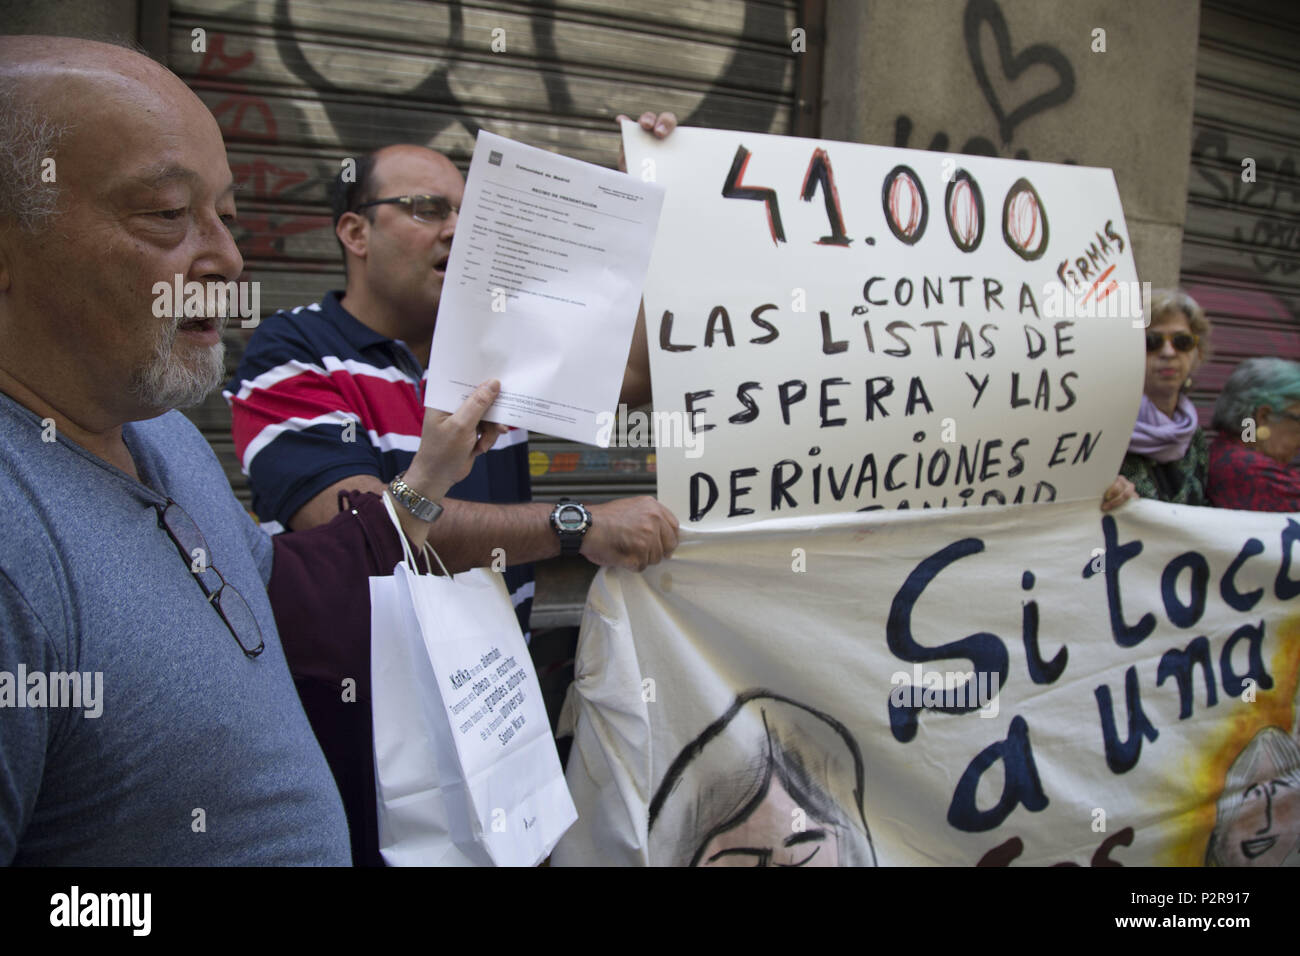 June 14, 2018 - Madrid, Spain - Protest after the delivery of the signatures..Delivery of 41 000 signatures against waiting lists and referrals from public health to private healthcare. (Credit Image: © Lito Lizana/SOPA Images via ZUMA Wire) - Stock Image